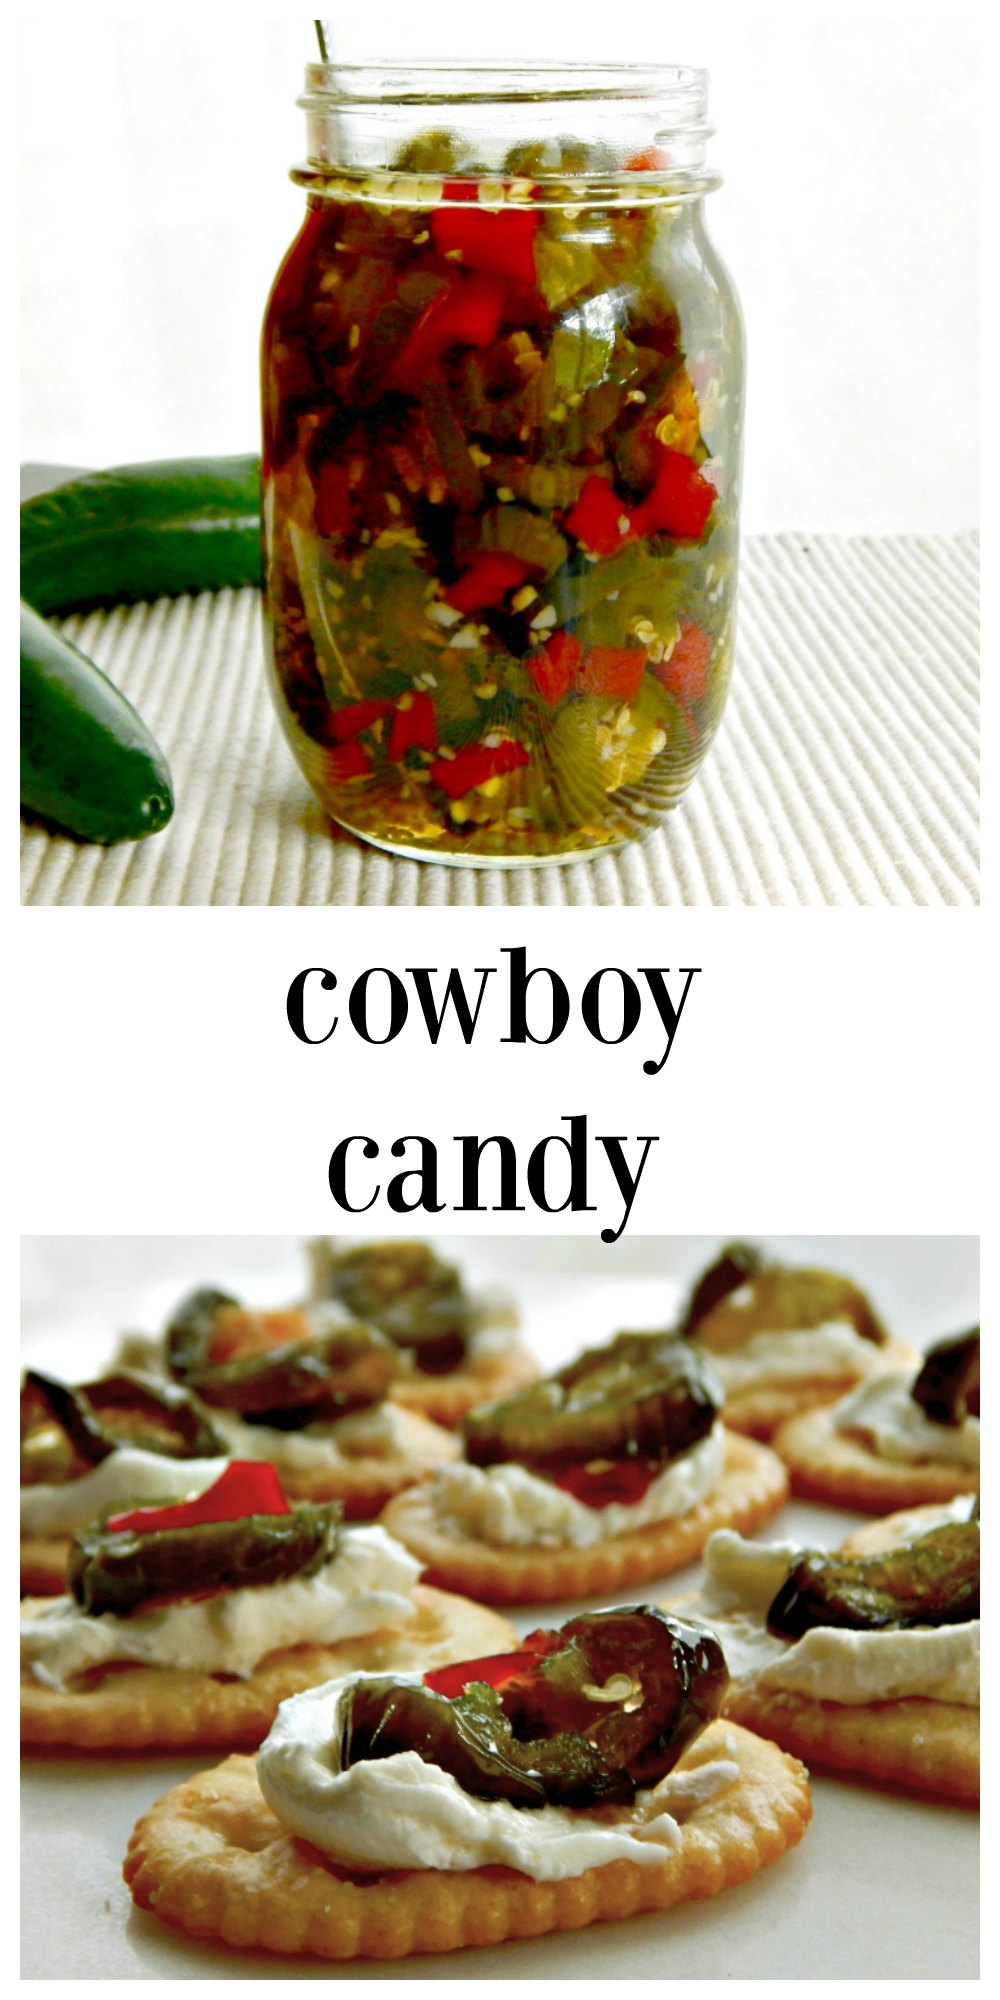 Cowboy Candy Sweet Hot Pickled Peppers are like pickled jalapenos x infinity. Killer hot but tempered by a little sweet, use as a condiment or in a dish! They're a great backyard barbecue or gameday app topping cream cheese spread crackers. Small Batch, refrigerator pickles. #CowboyCandy #GameDayAppetizer #PickledJalapenos